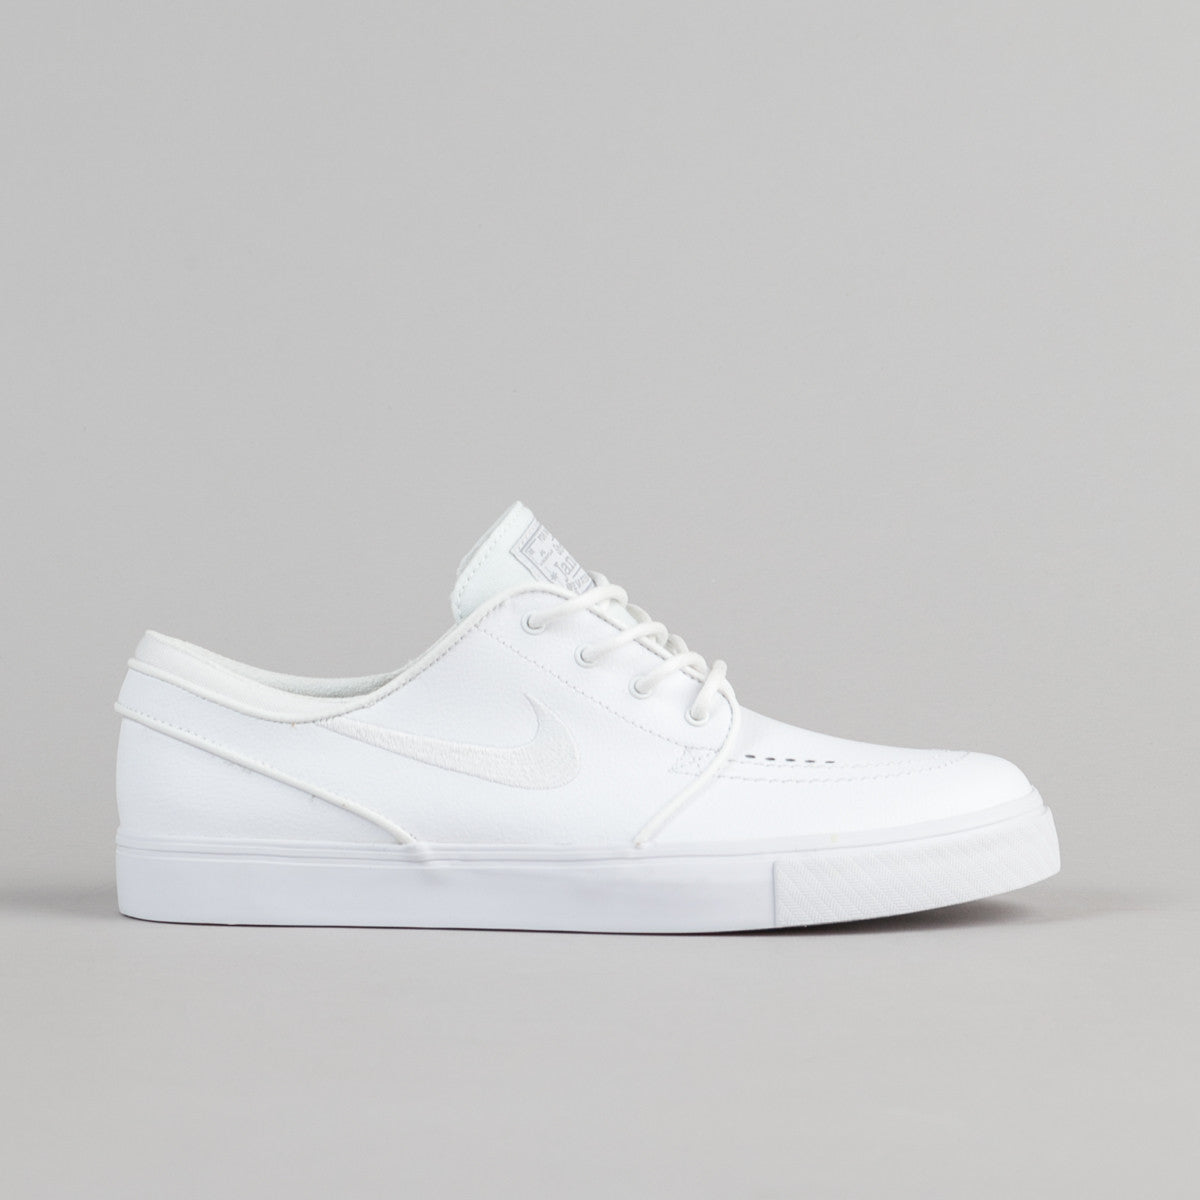 Nike Janoski White Leather